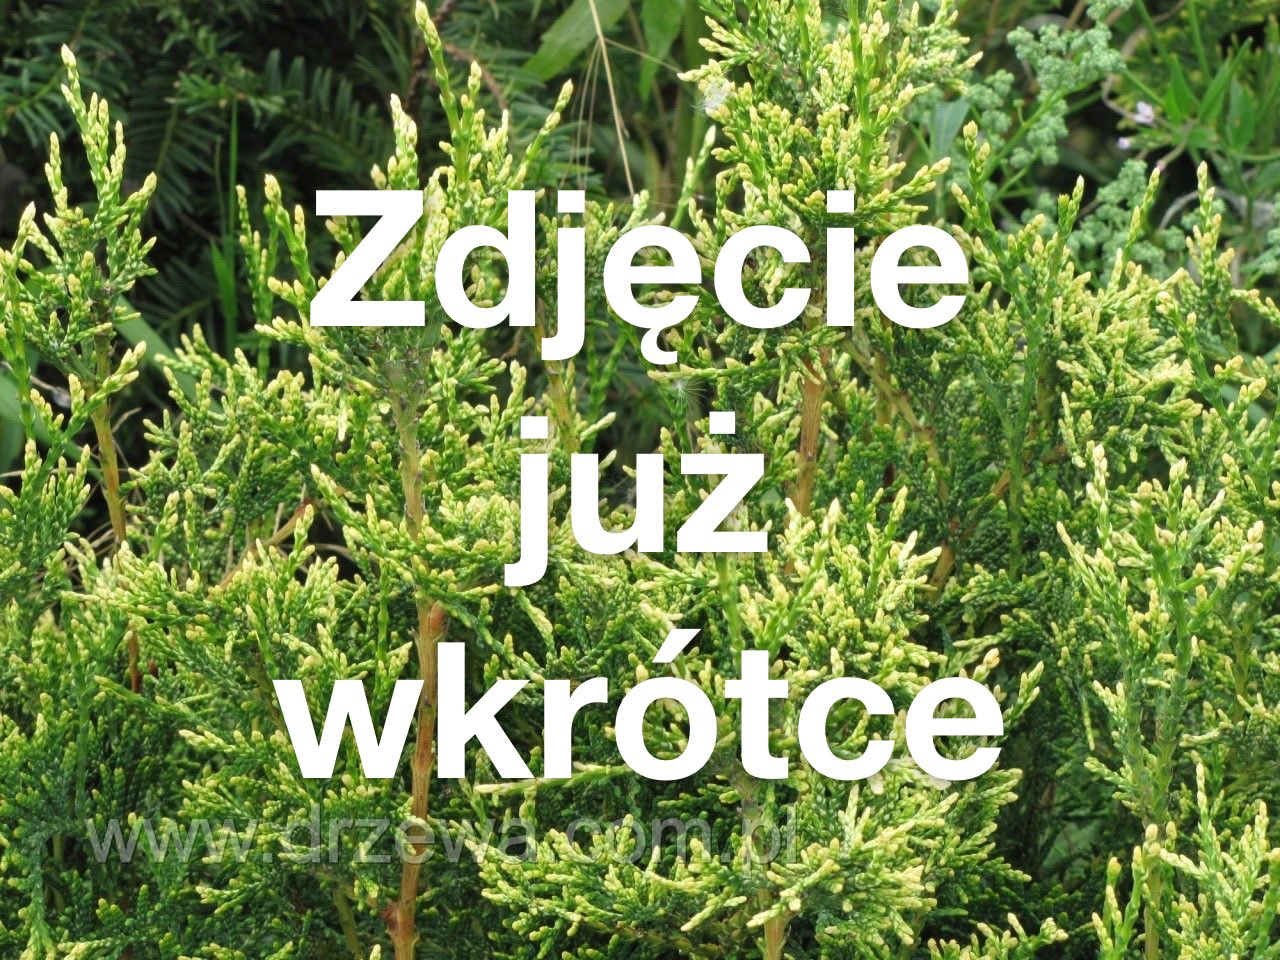 Winorośl 'Reliance'